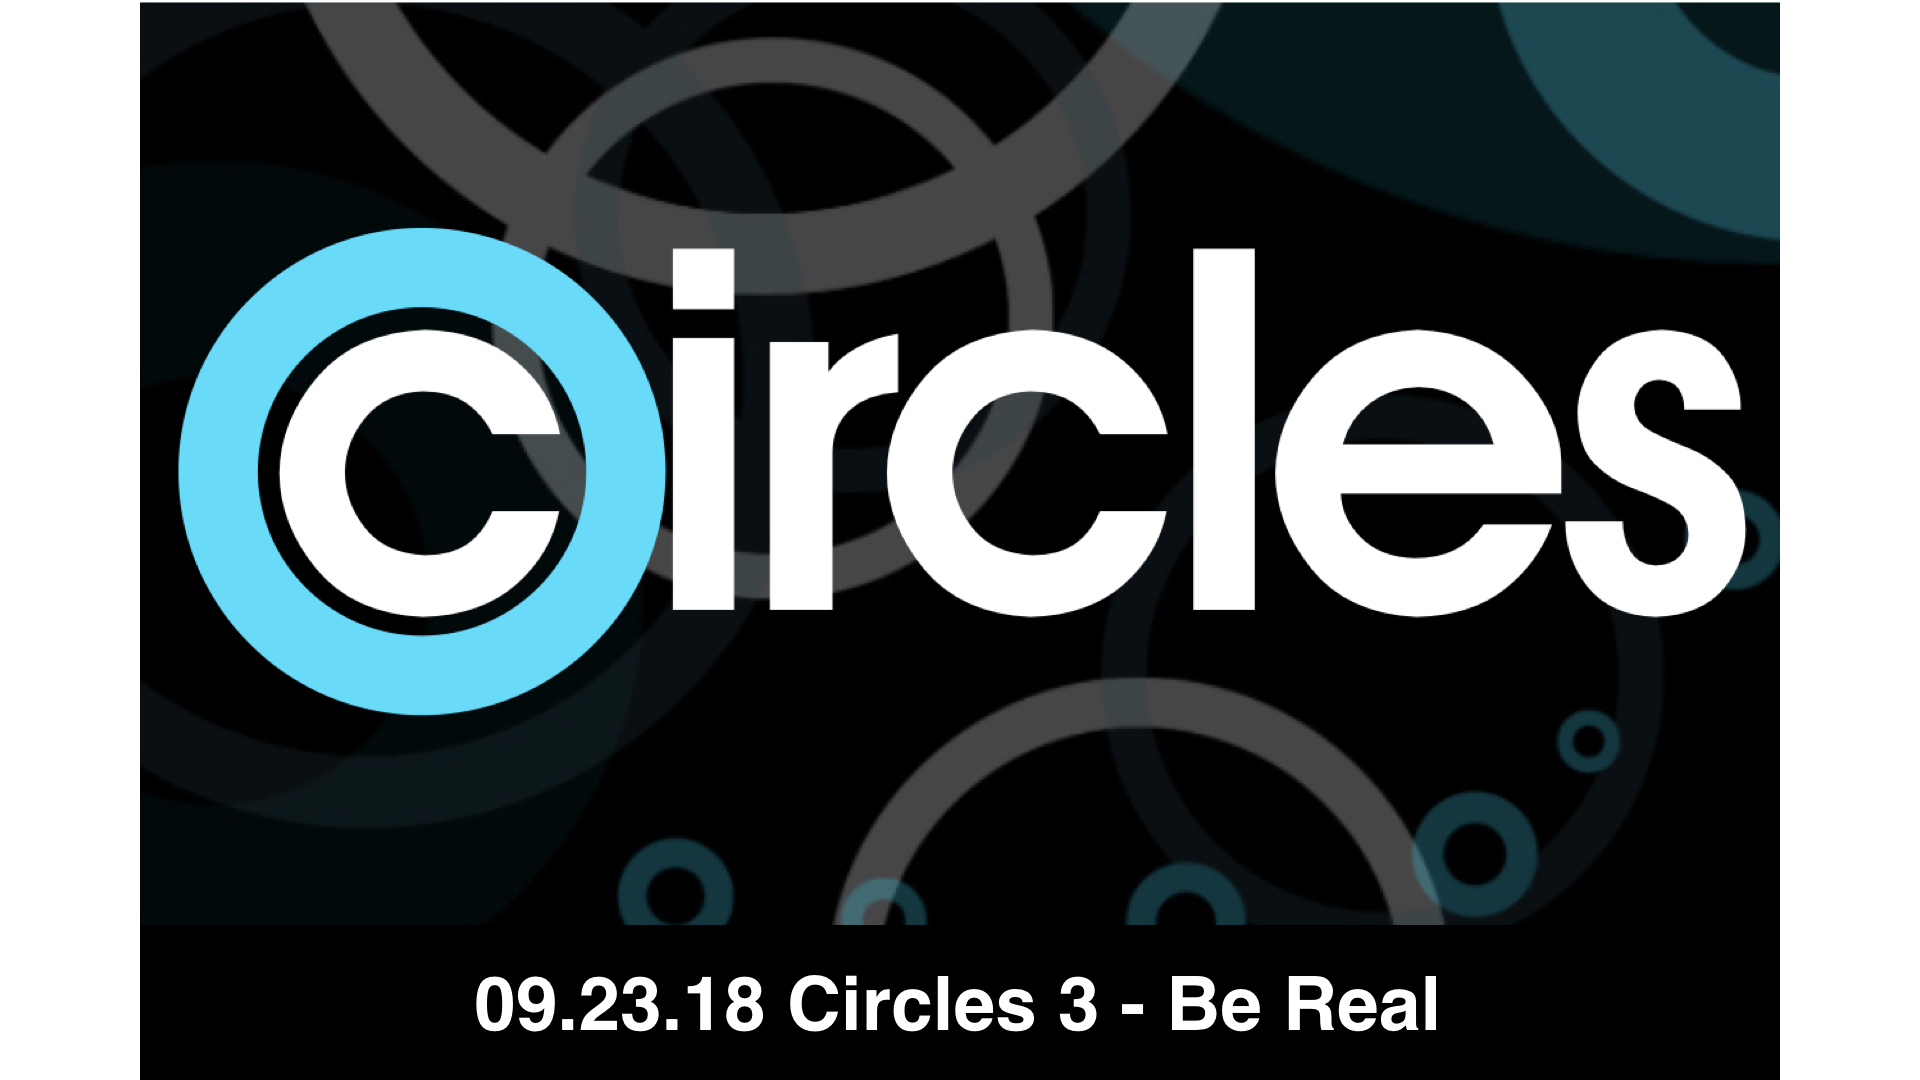 09.23.18 Circles 3 - Be Real